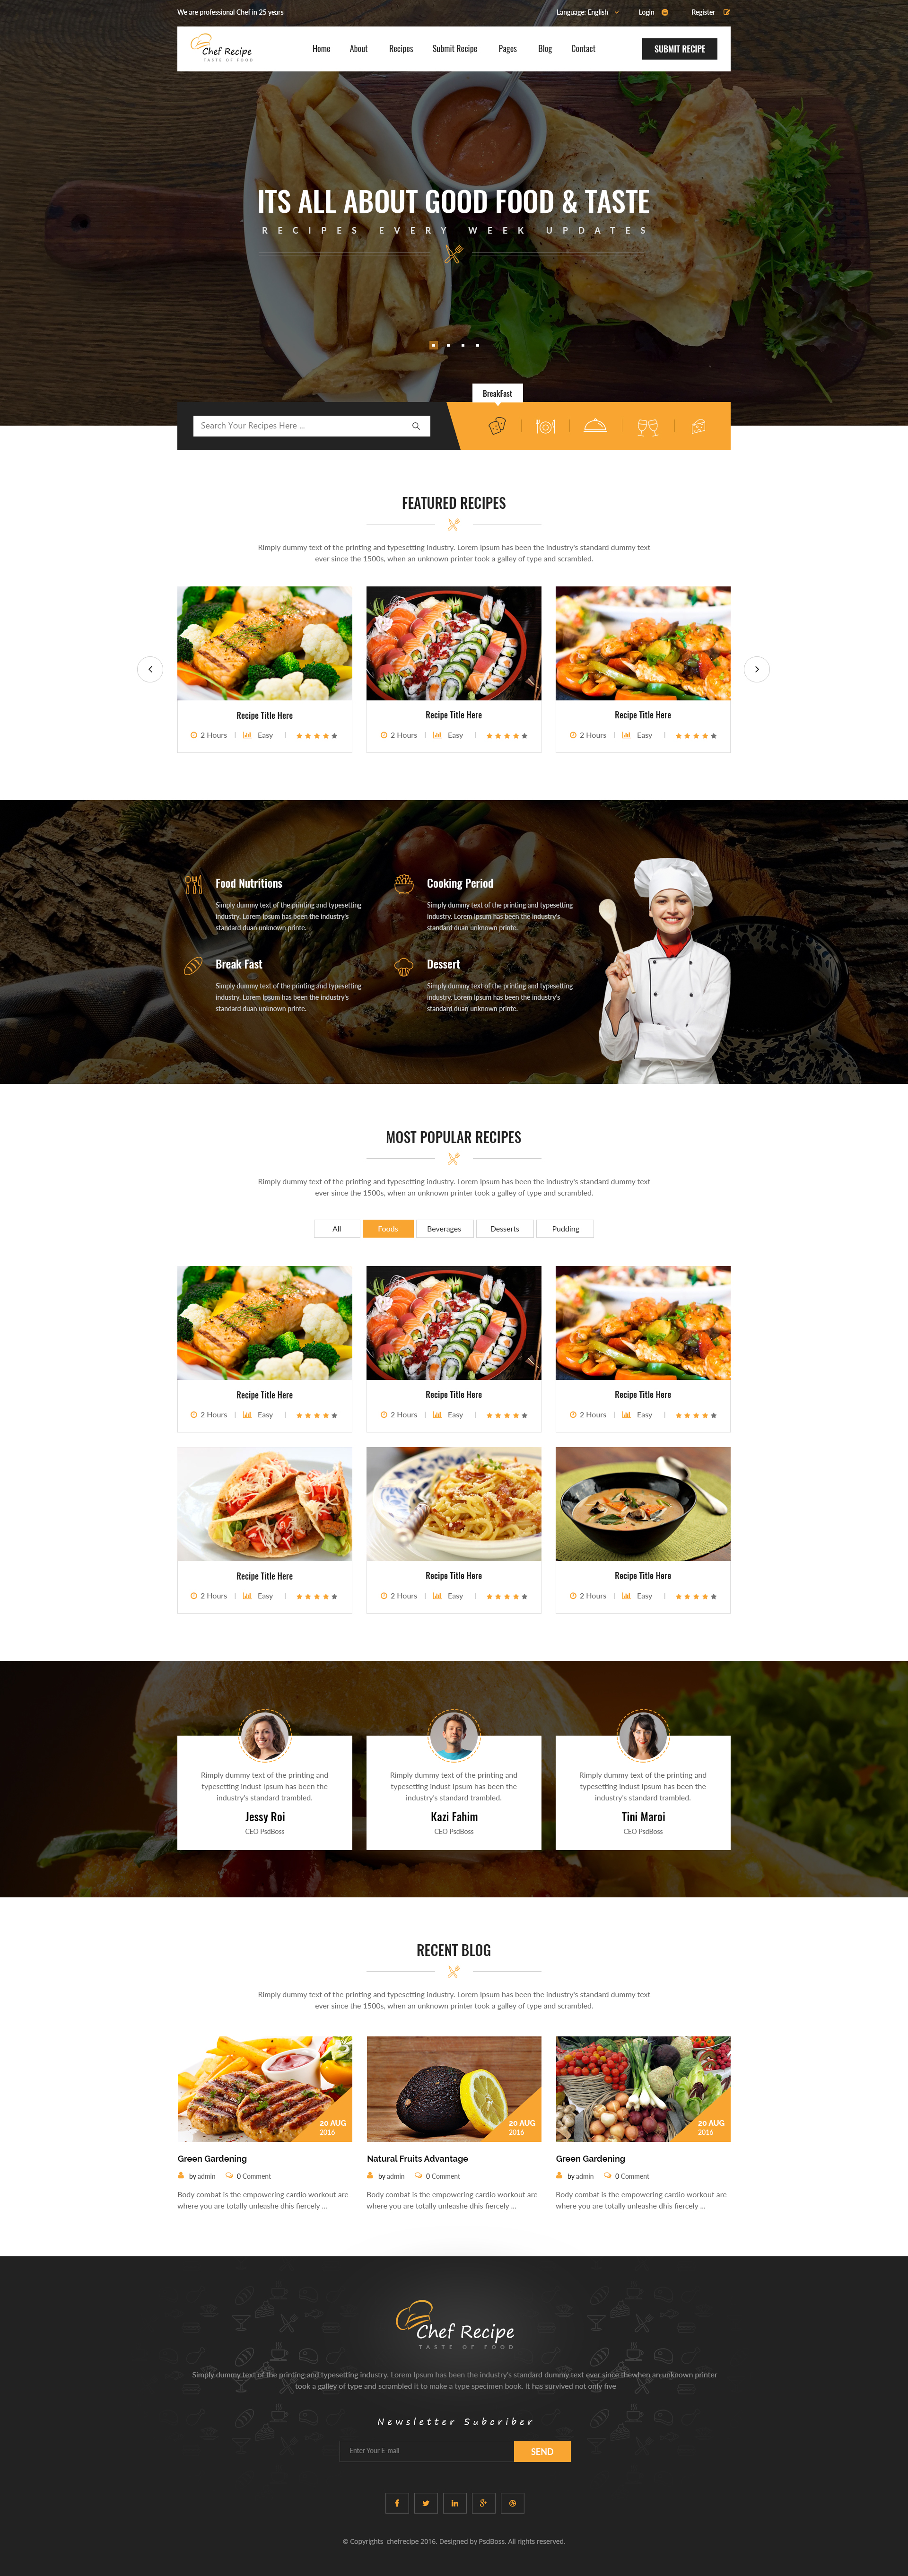 Chef recipe food and recipe psd template by psdboss themeforest chef recipe food and recipe psd template forumfinder Choice Image